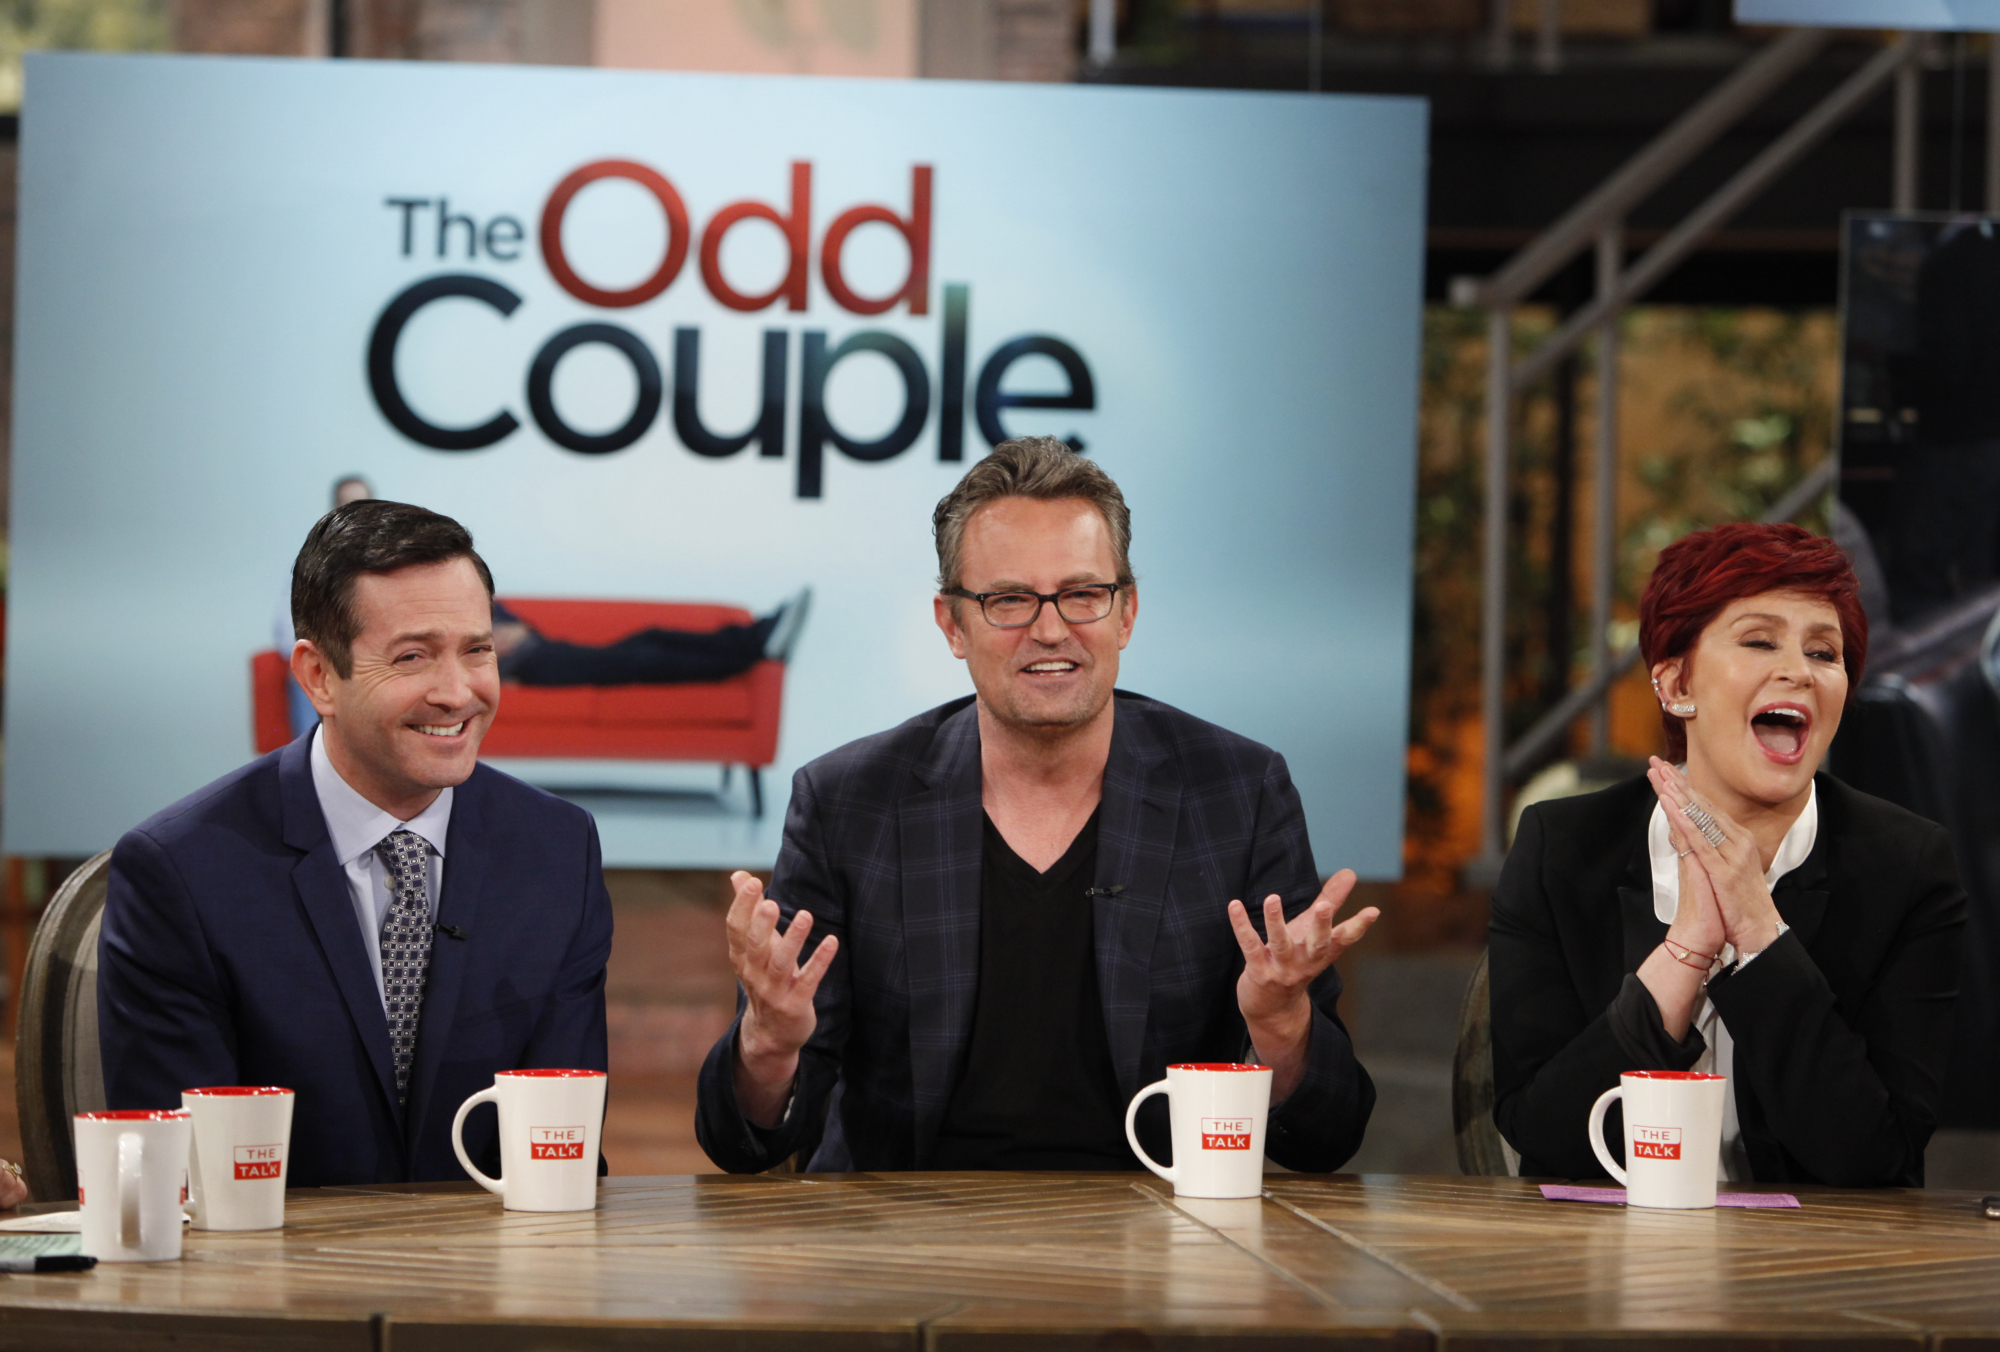 Silly antics with Thomas Lennon and Matthew Perry